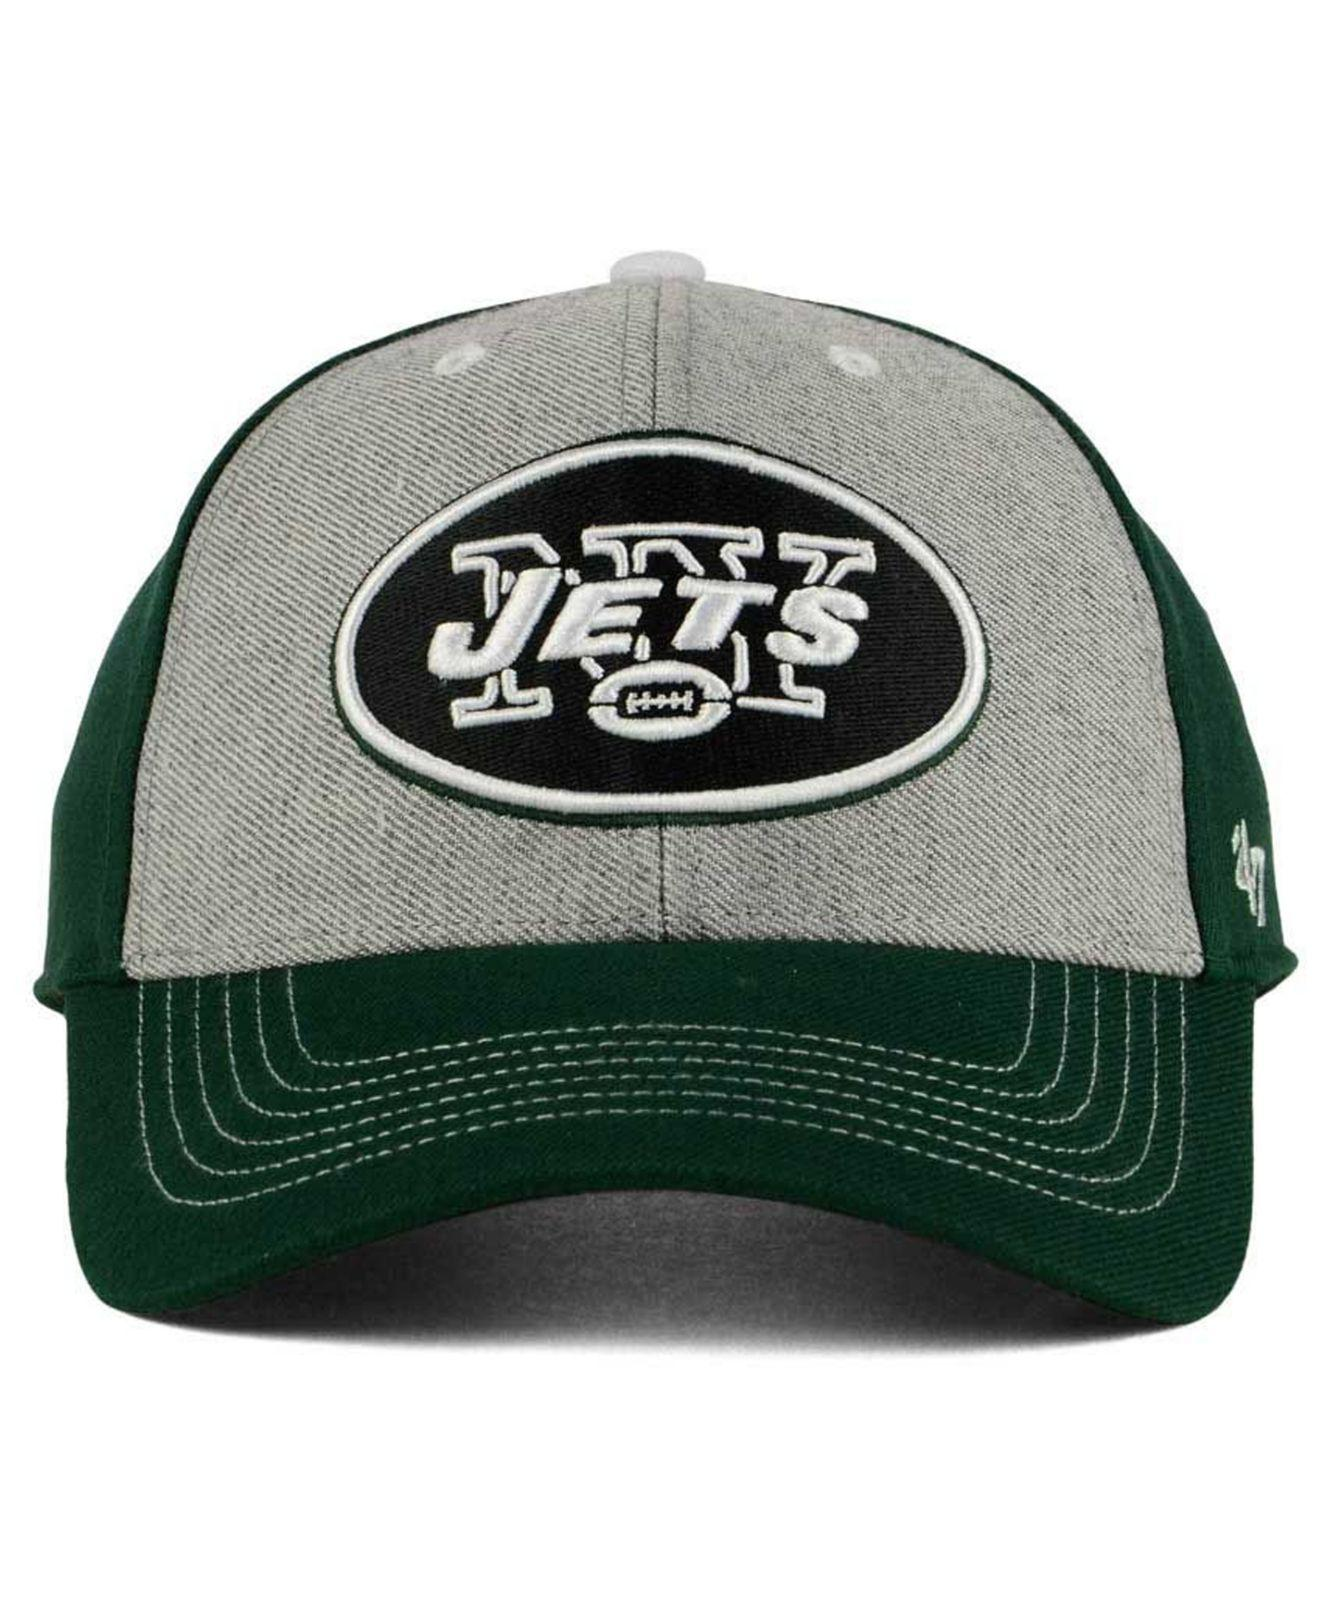 new styles 080c6 072d6 Lyst - 47 Brand New York Jets Formation Mvp Cap in Green for Men